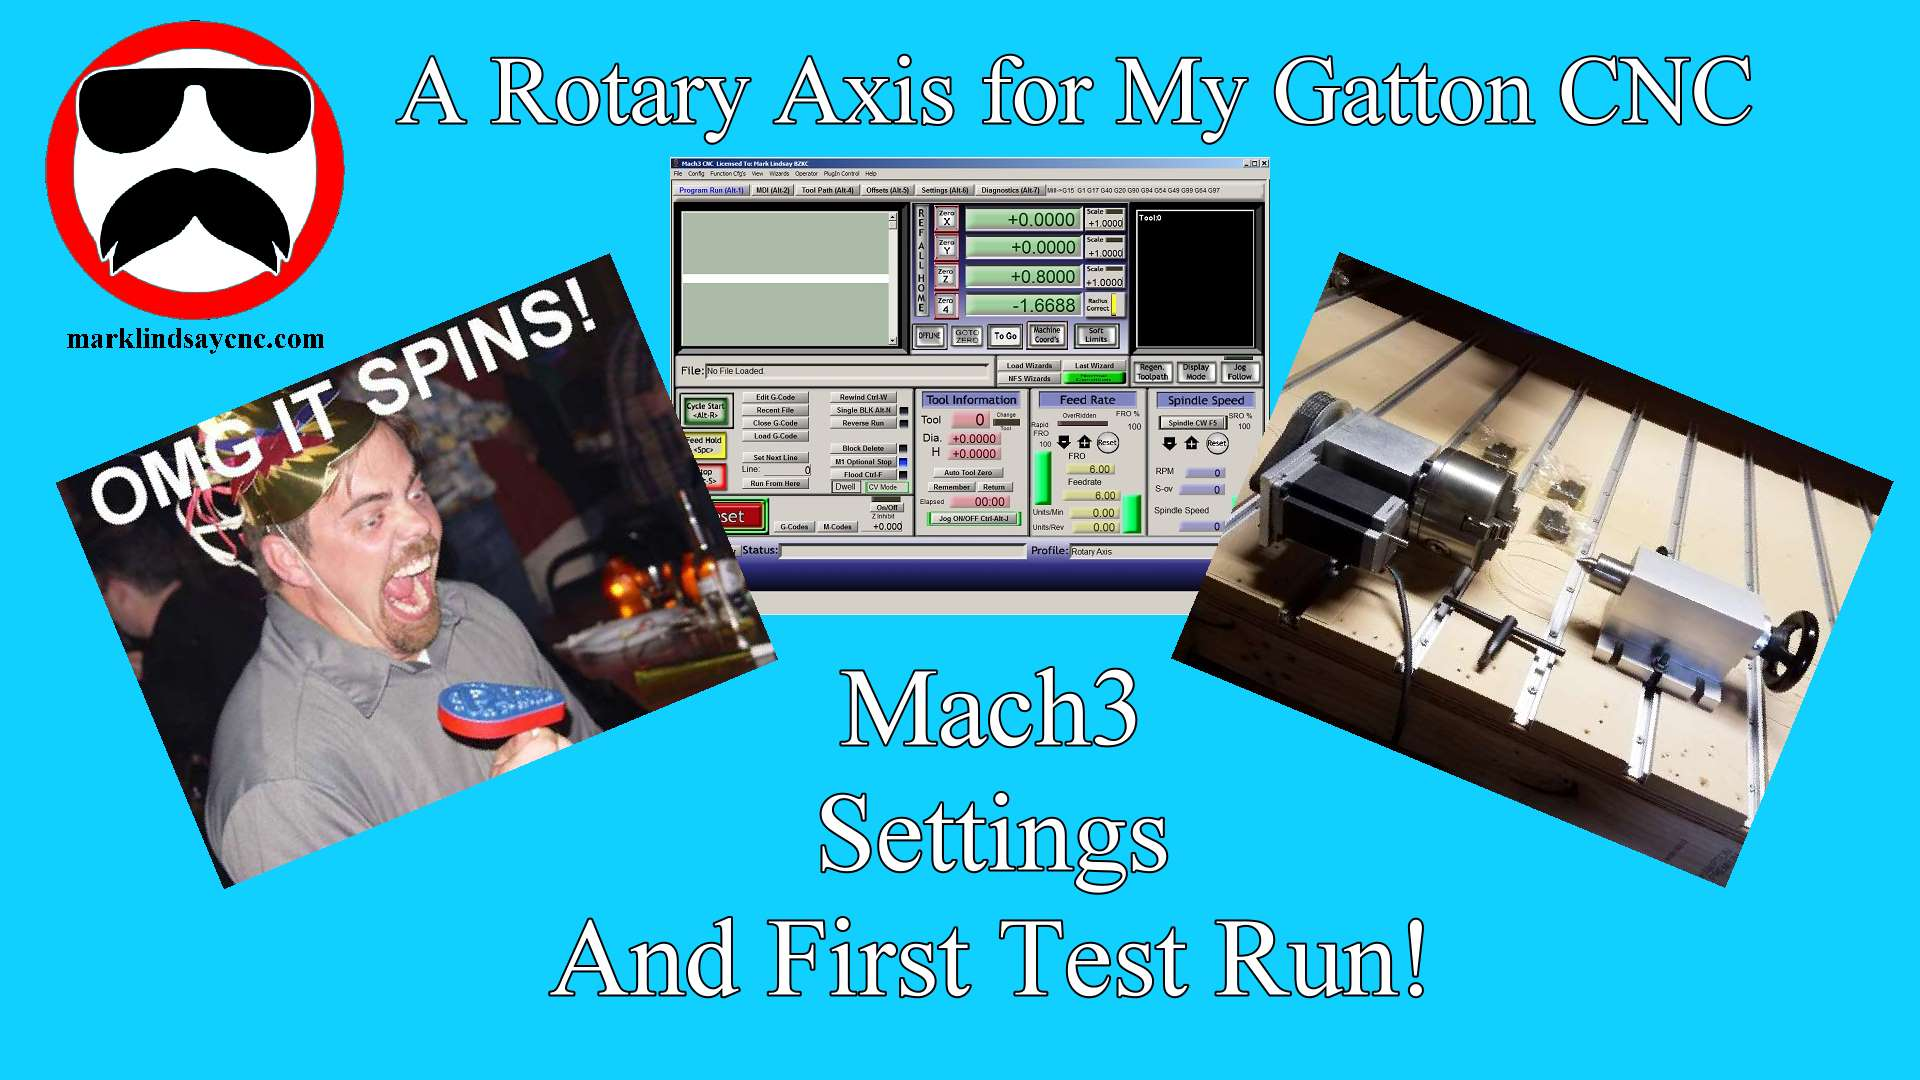 Mach3 Settings for the Rotary Axis